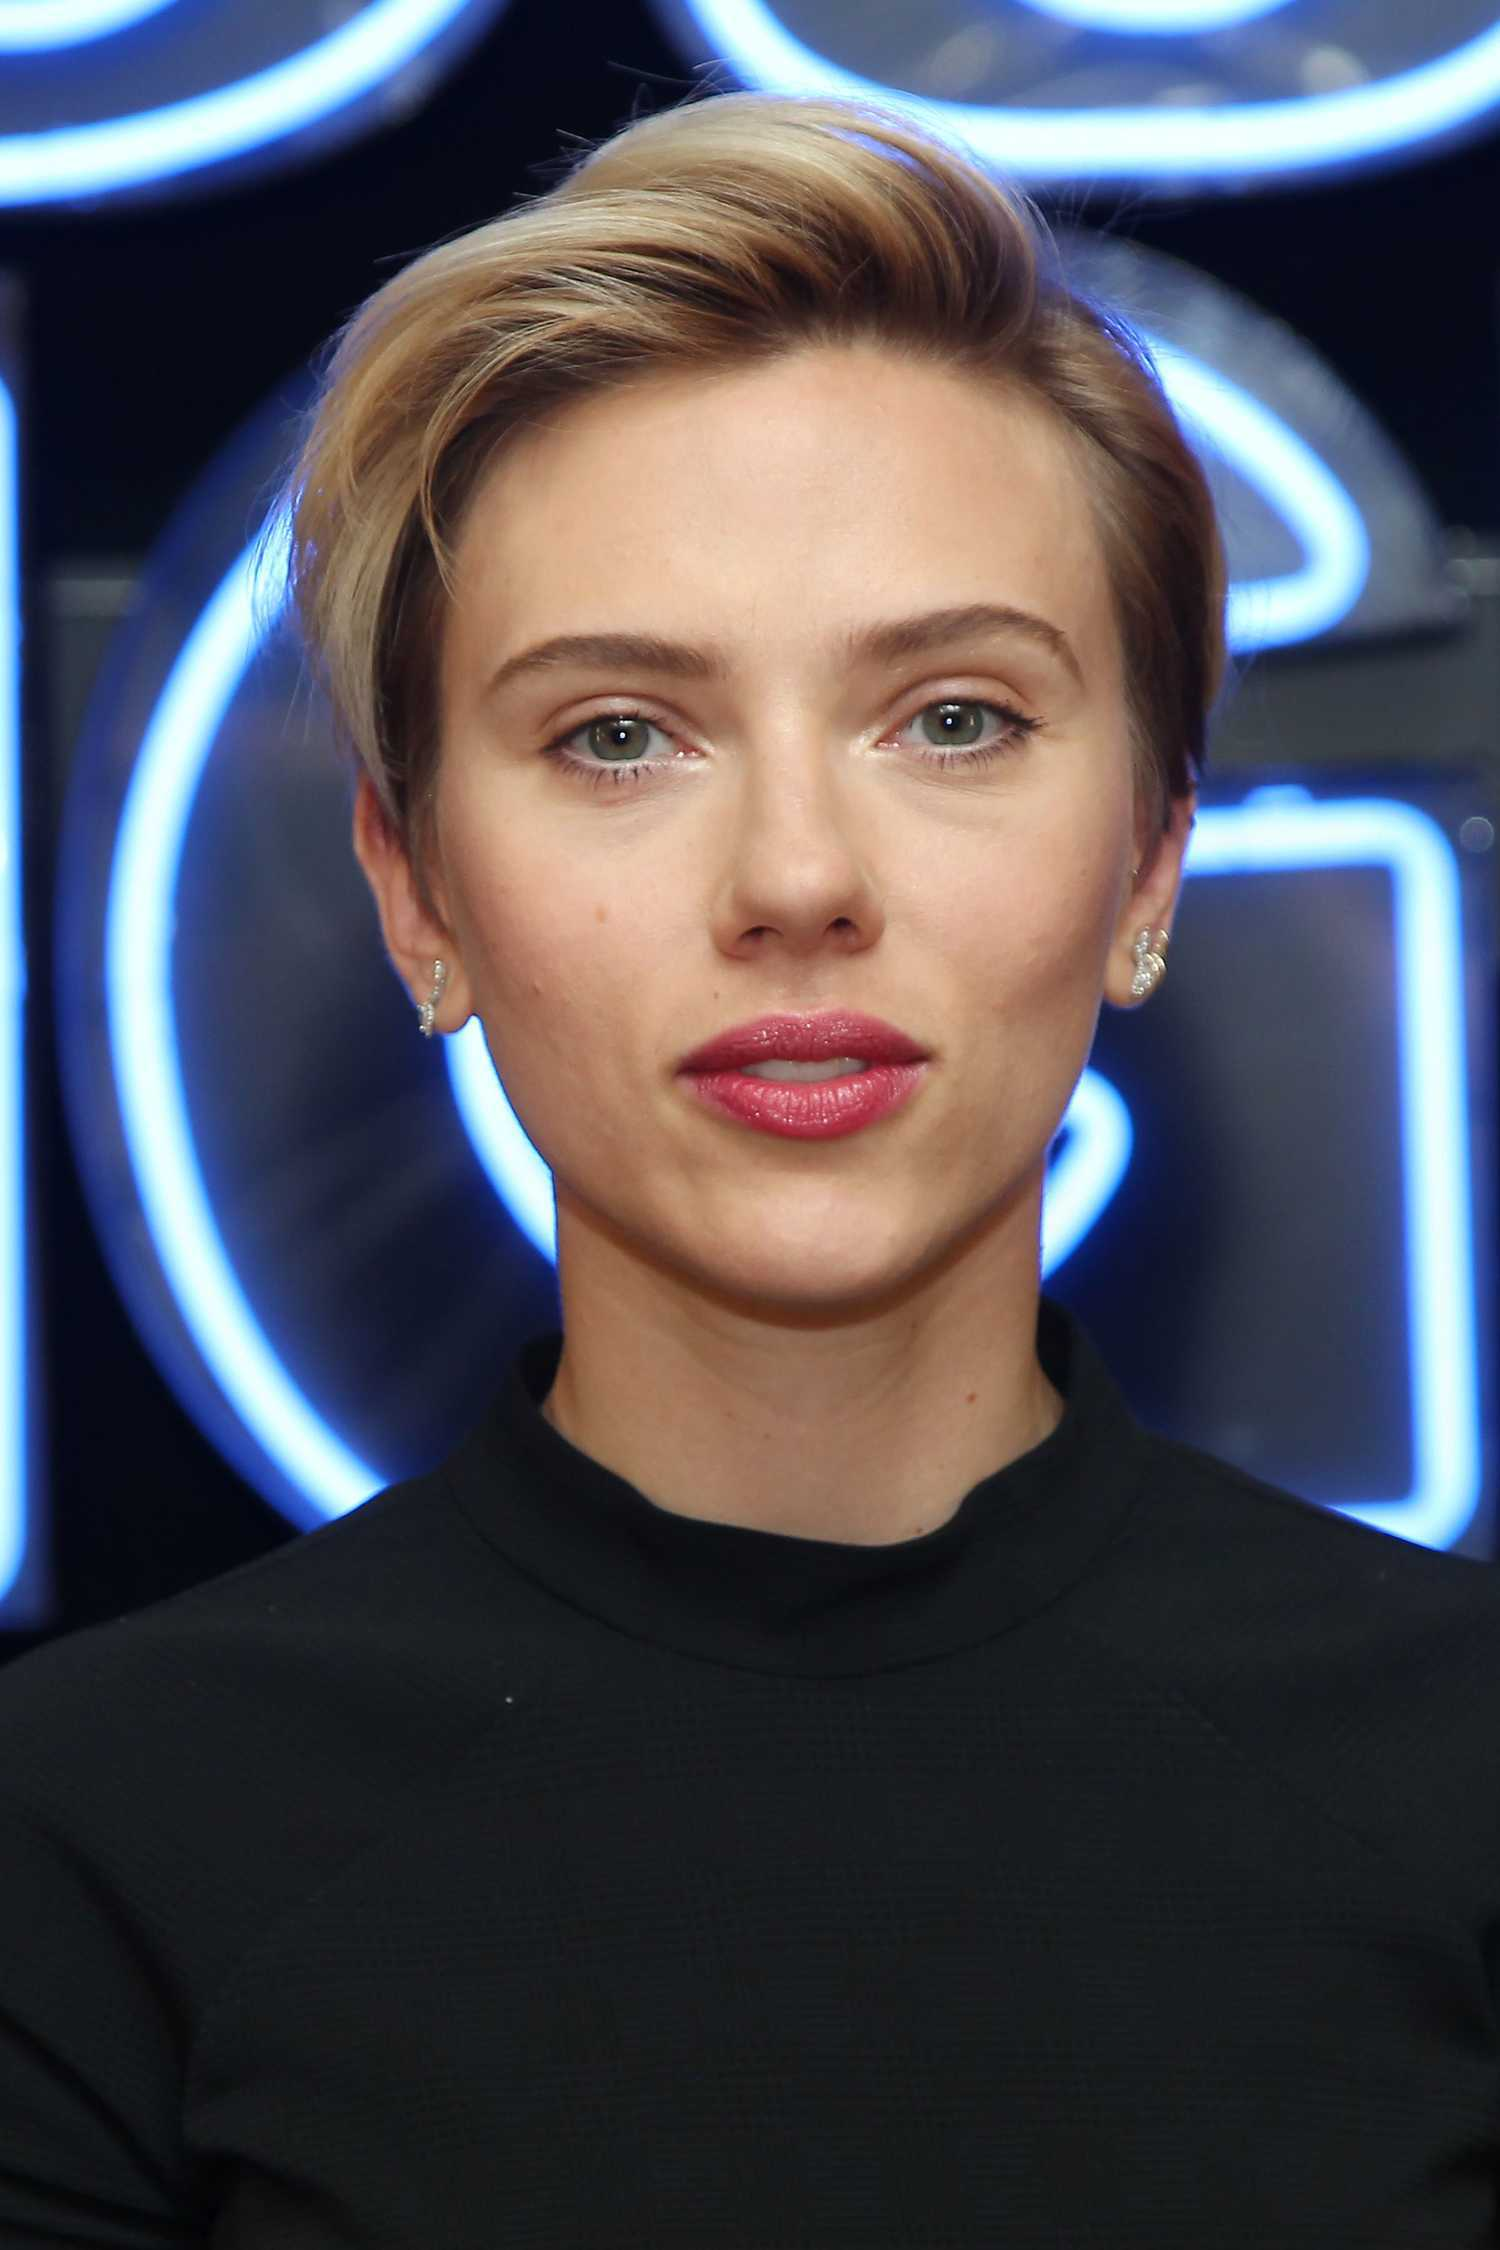 Scarlett Johansson At The Rough Night Photo Call Celeb Donut